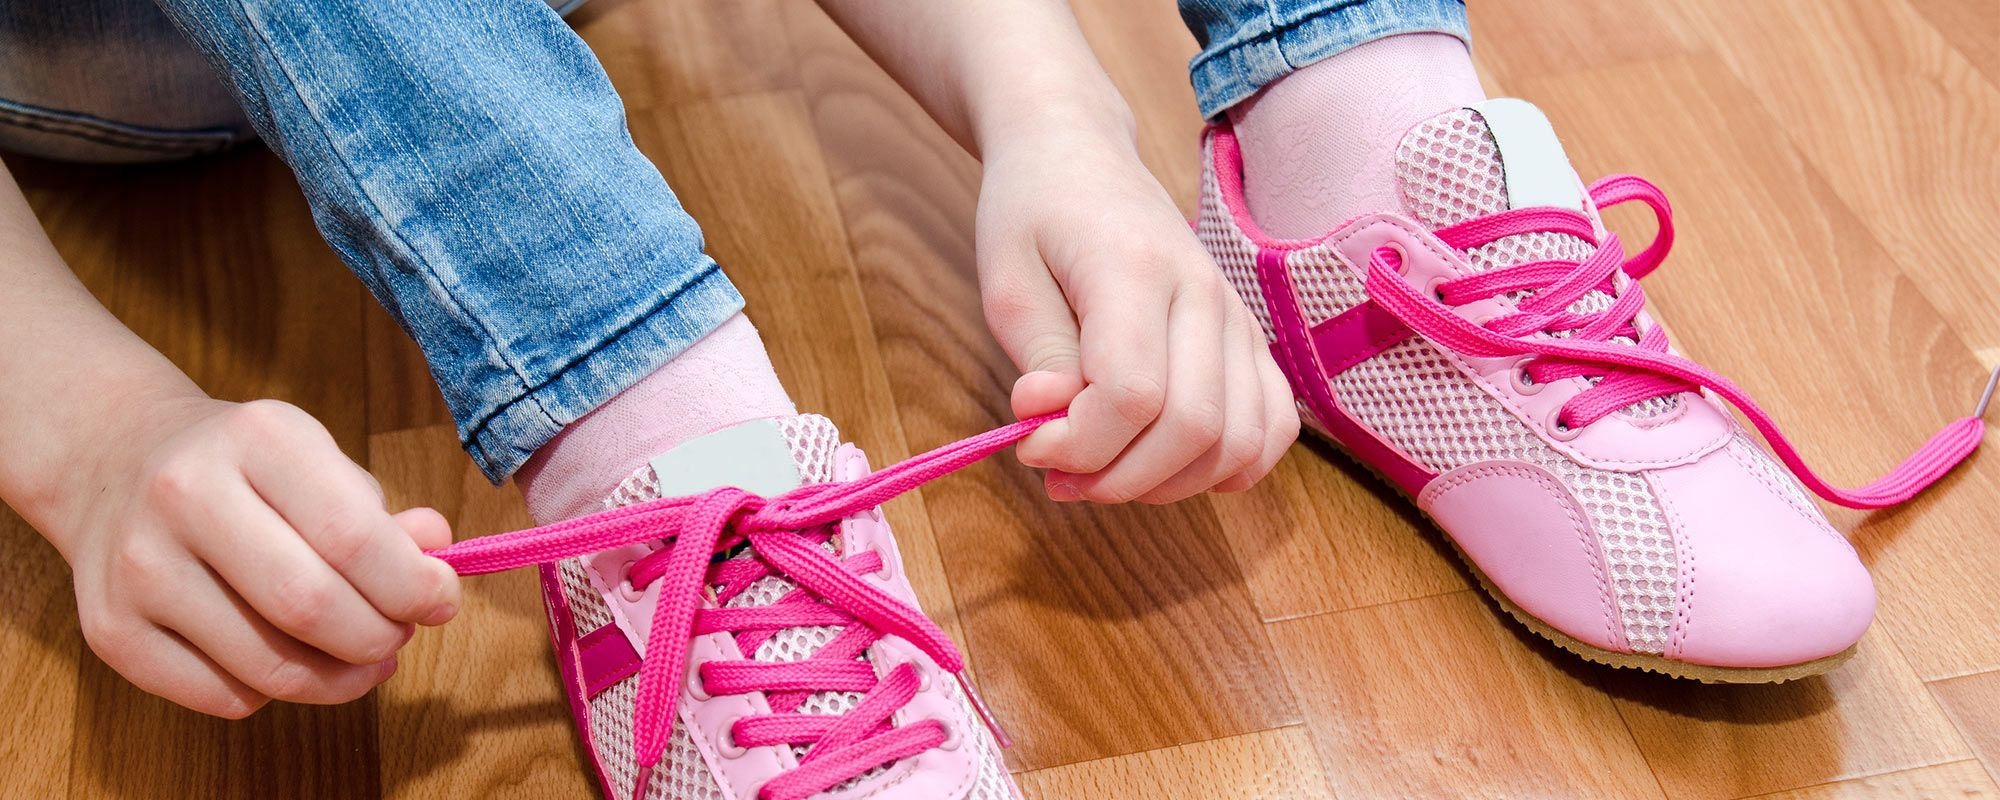 Does your child have difficulty buttoning and zipping clothes or tying shoes?